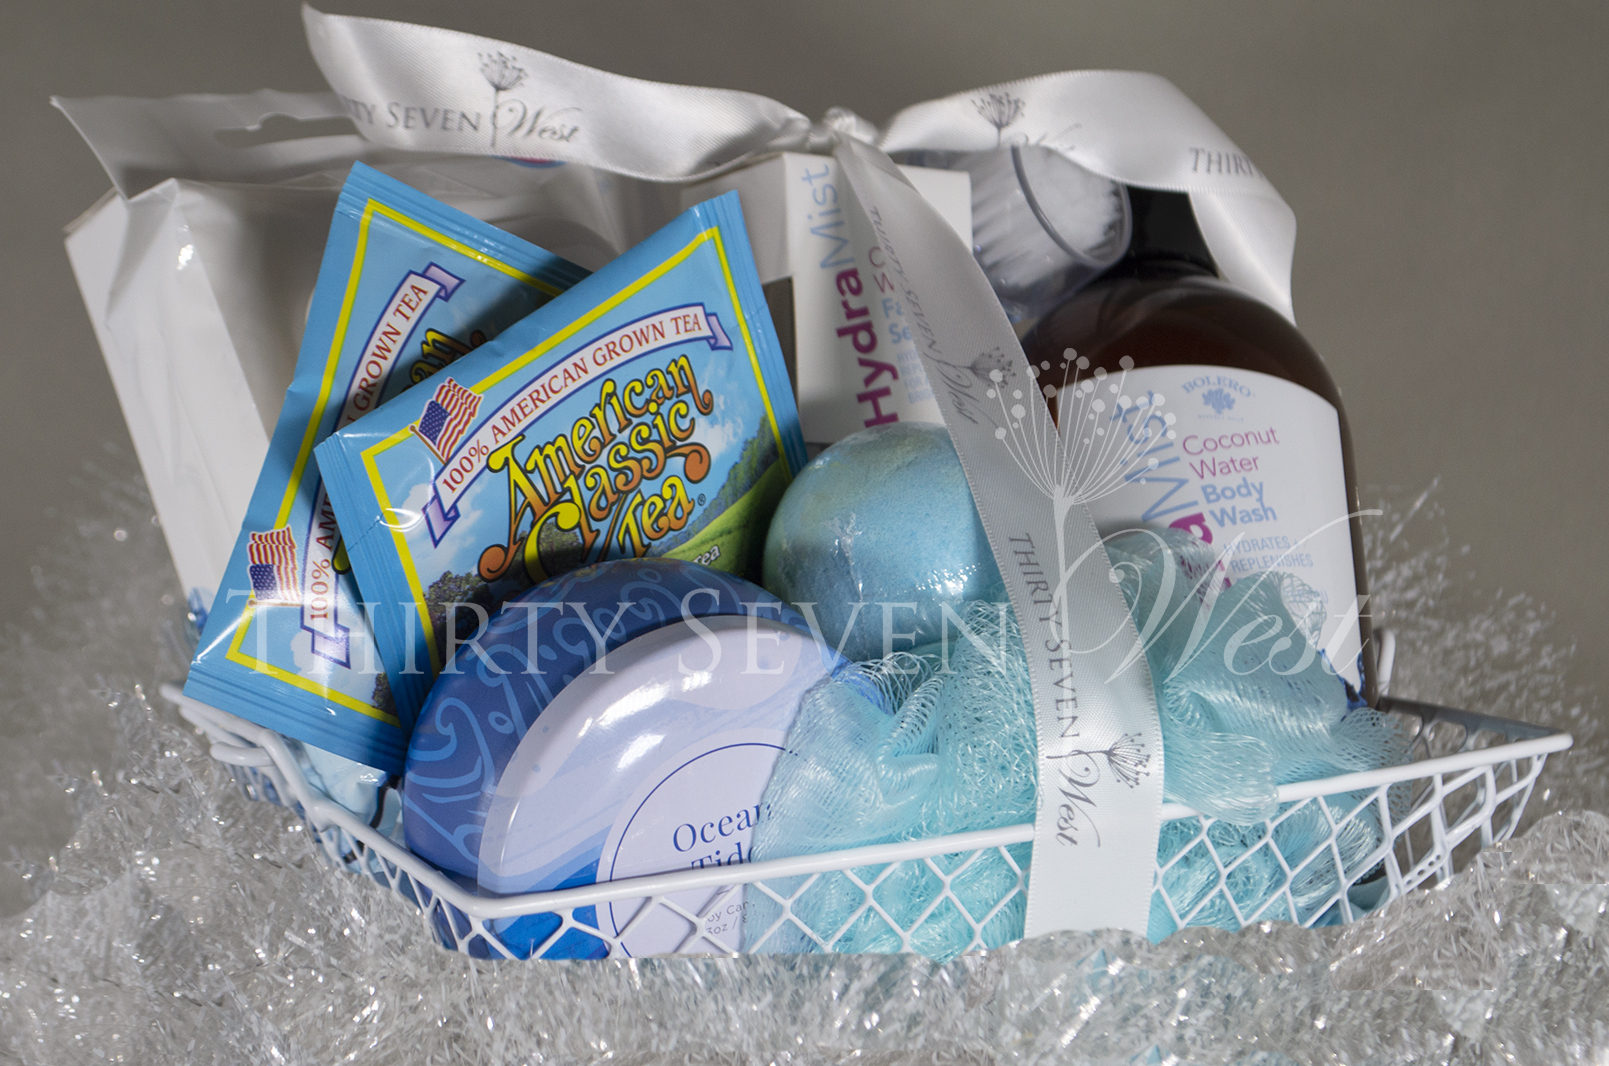 Gift Baskets for Corporate Events with Custom Logo Ribbon, Logo Ribbon on gift baskets, Gifts on Baskets with Ribbon Printed, Personalized Ribbon on Basket for your events